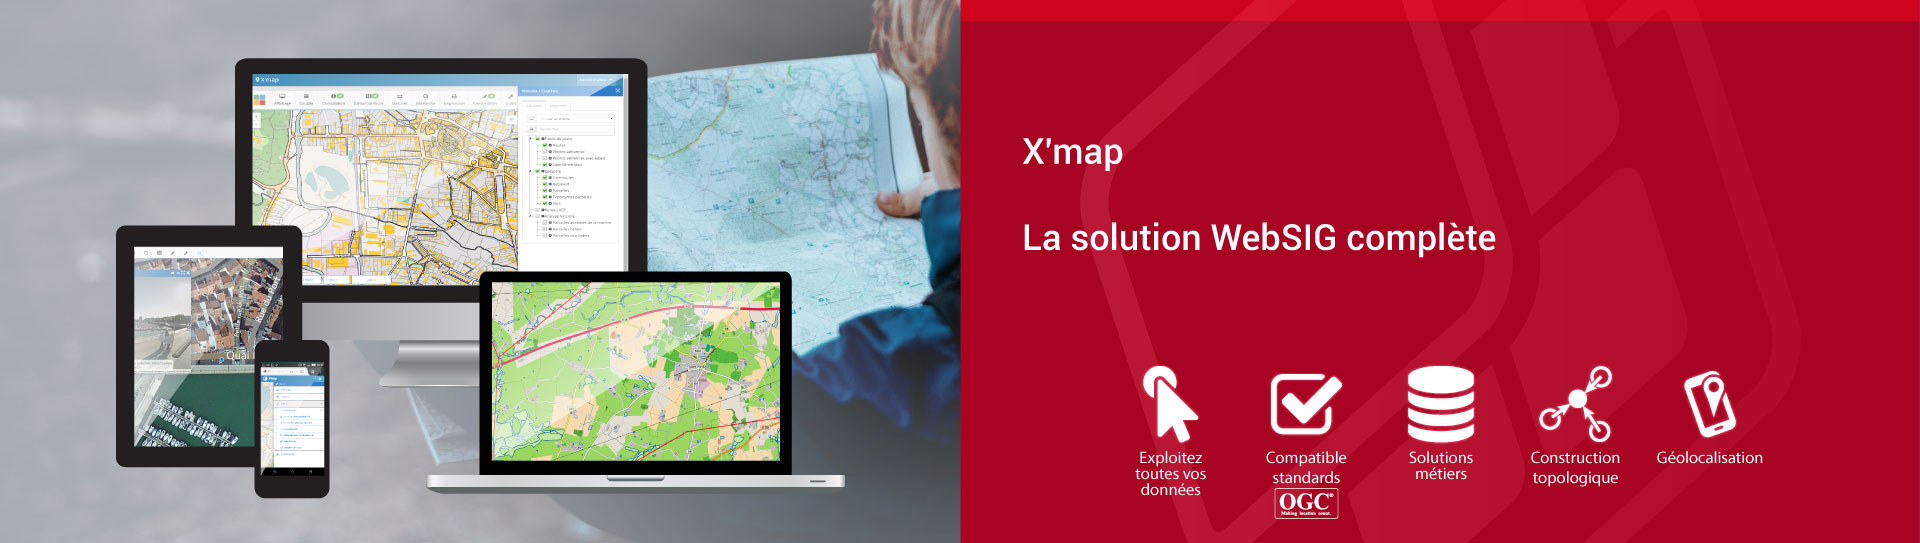 X'map, la solution WebSIG complète.